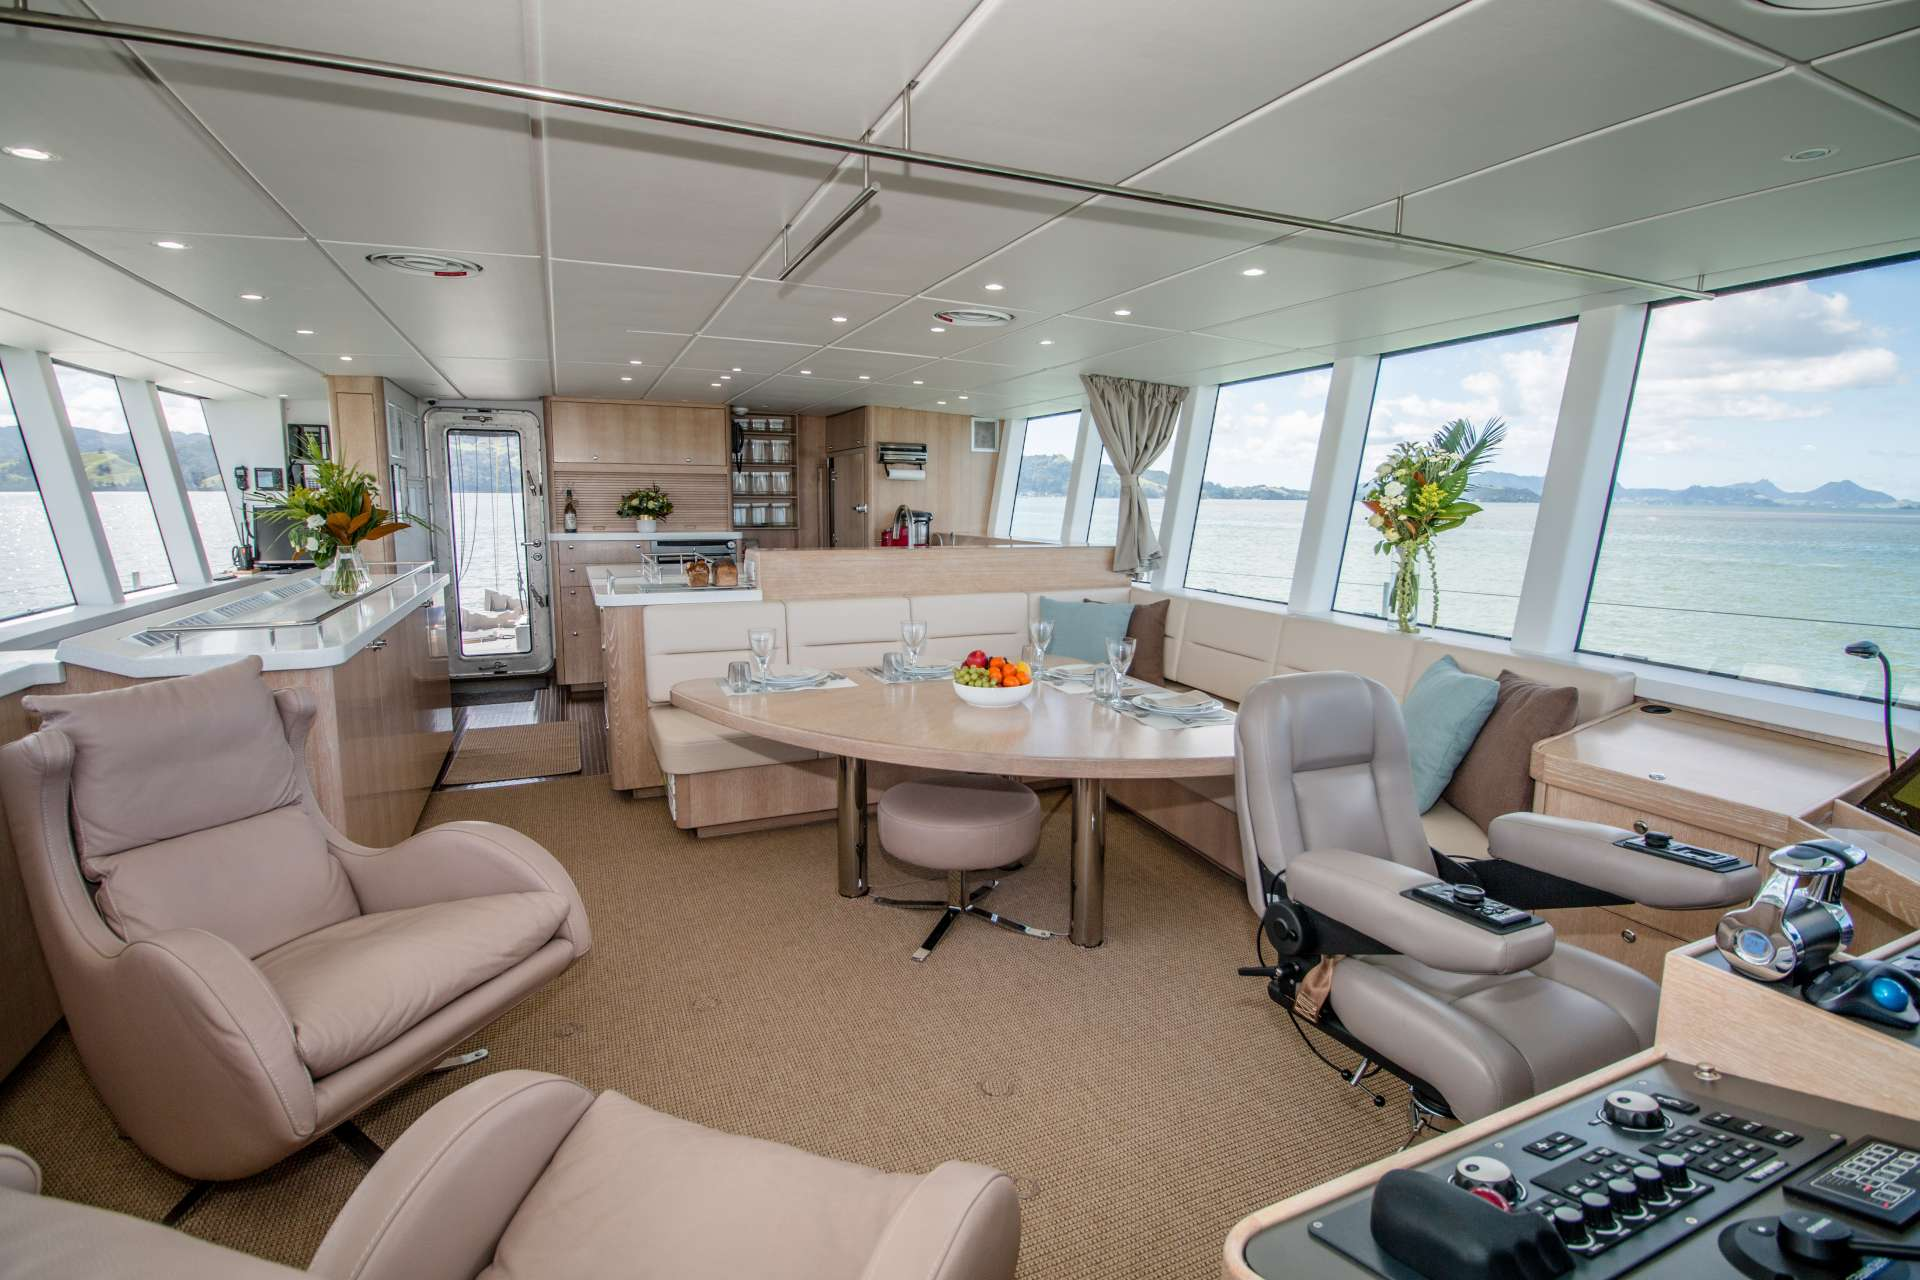 Power Yacht 'Power', 6 PAX, 3 Crew, 78.00 Ft, 23.00 Meters, Built 2017, Custom, Refit Year